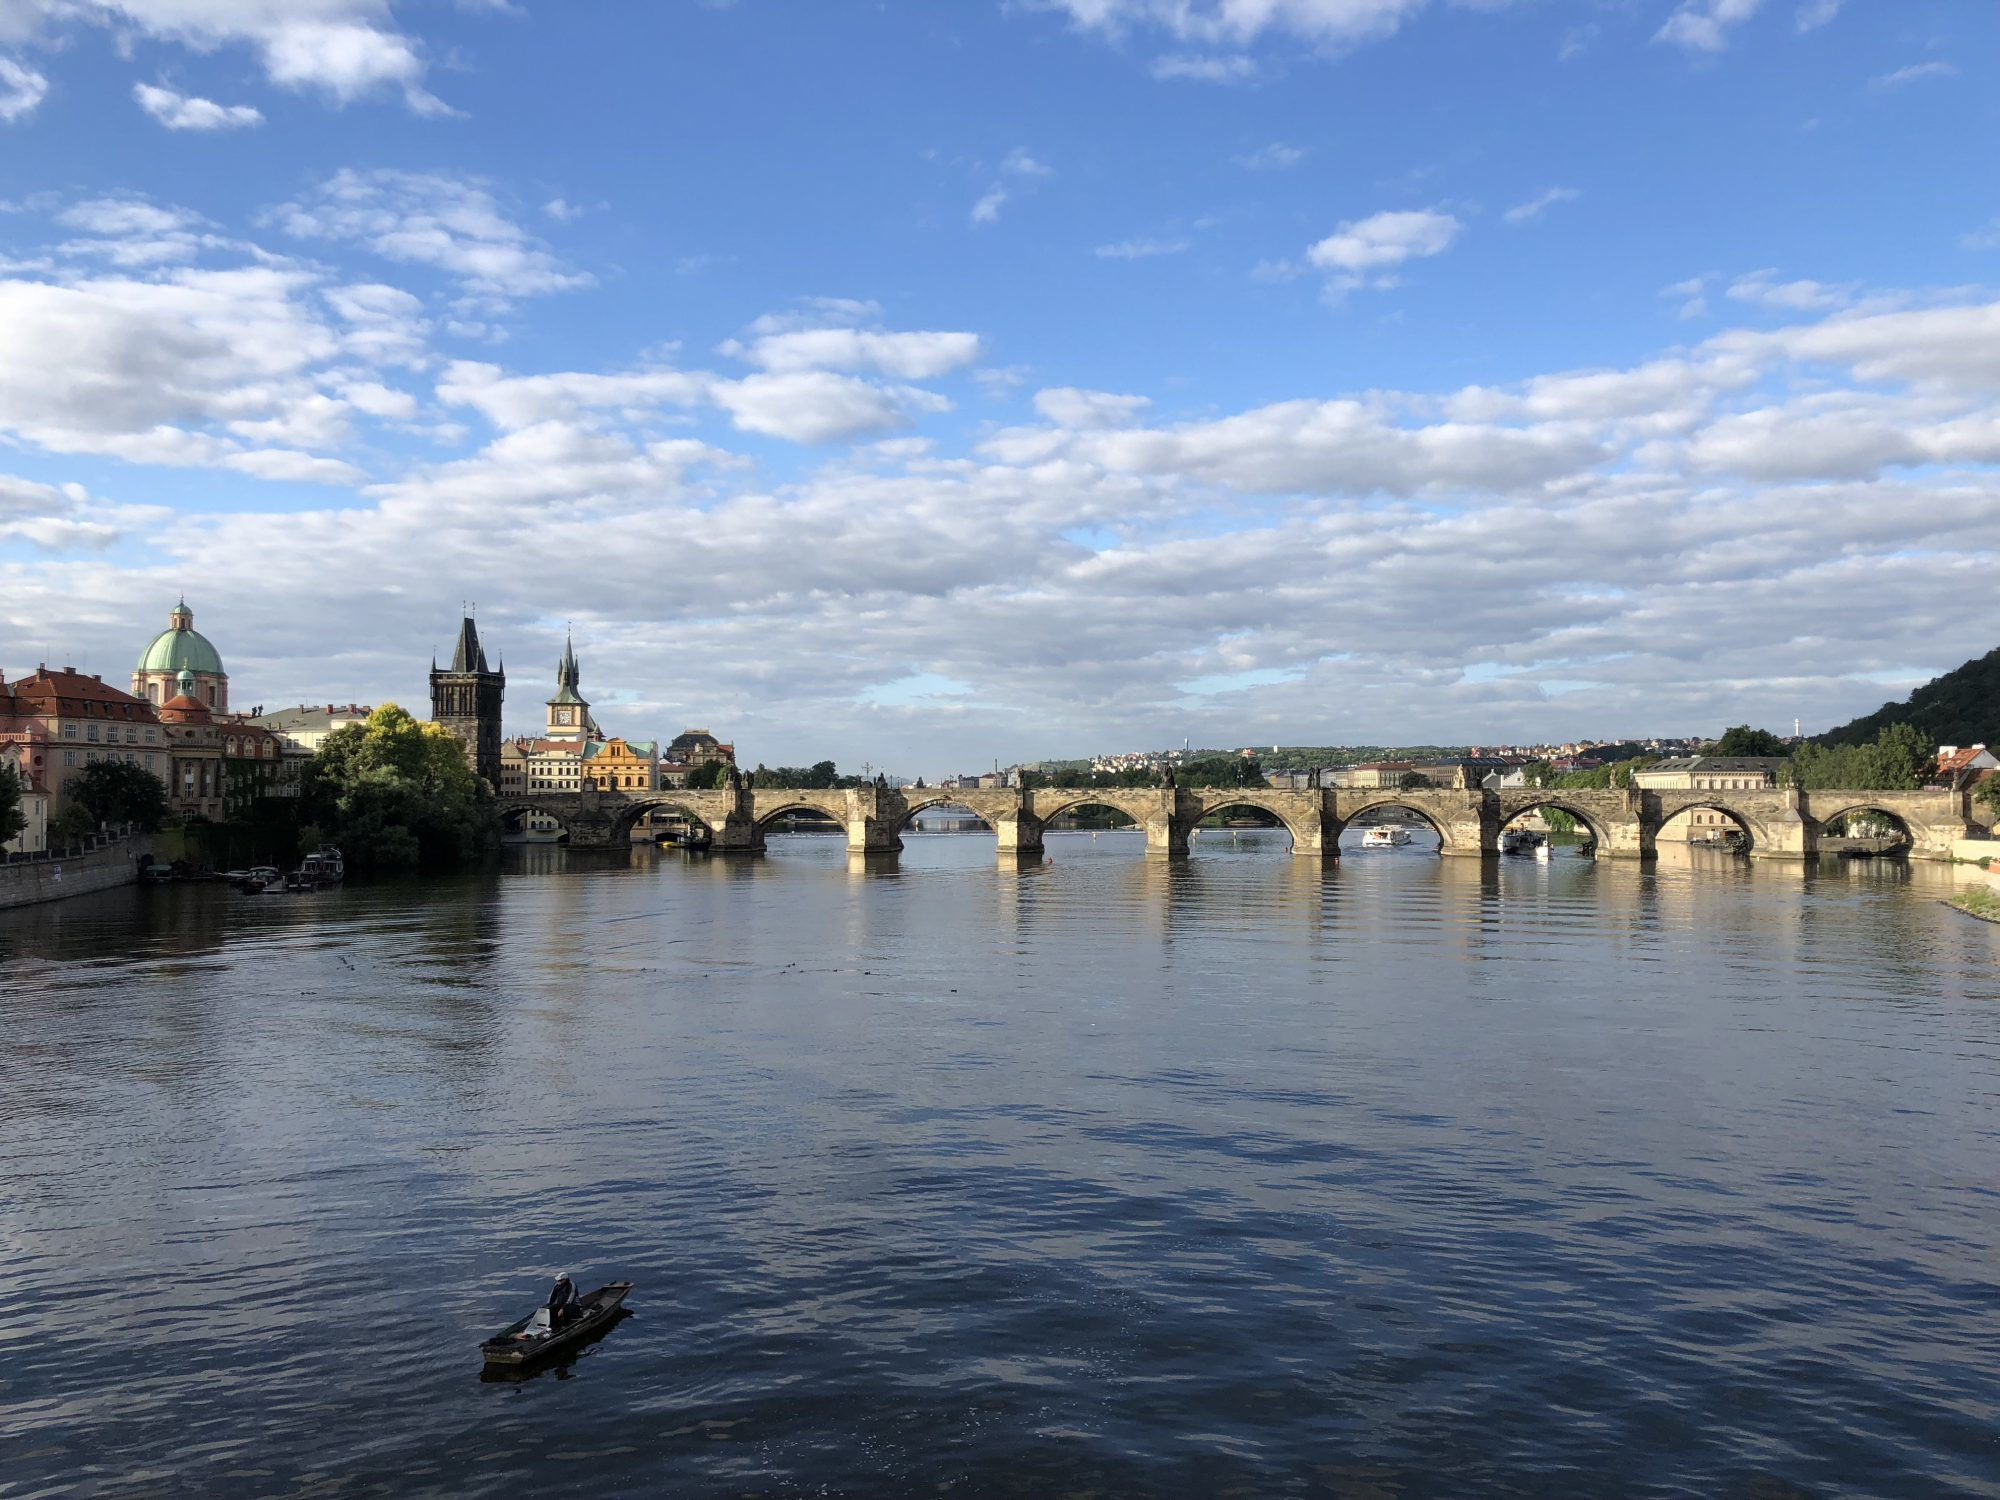 prague charles bridge view from across river early morning empty